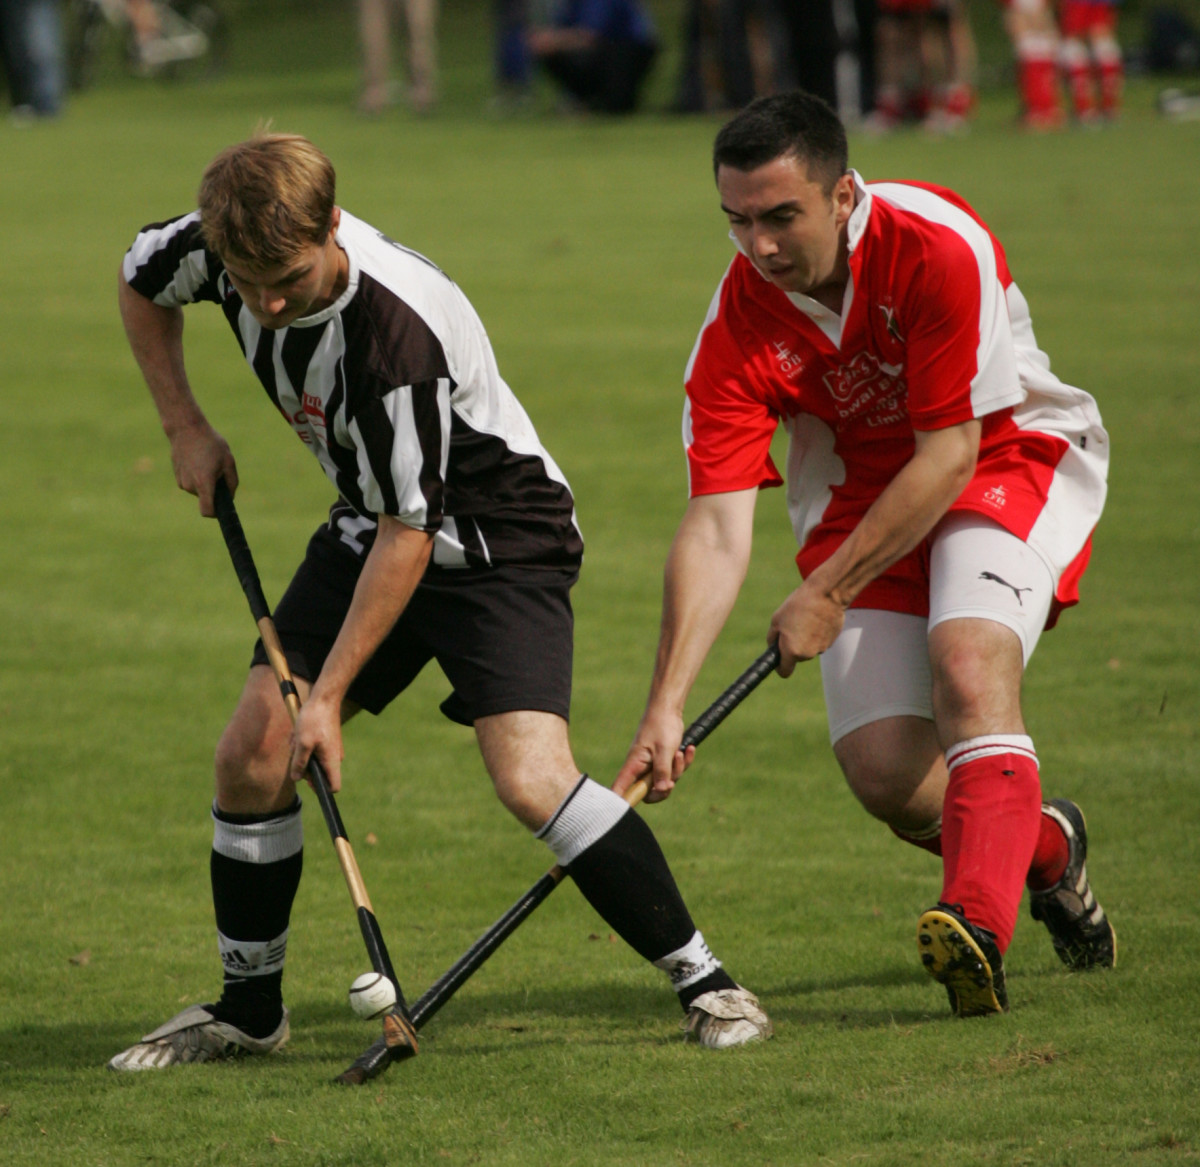 Scottish Sports: A Beginner's Guide To Shinty